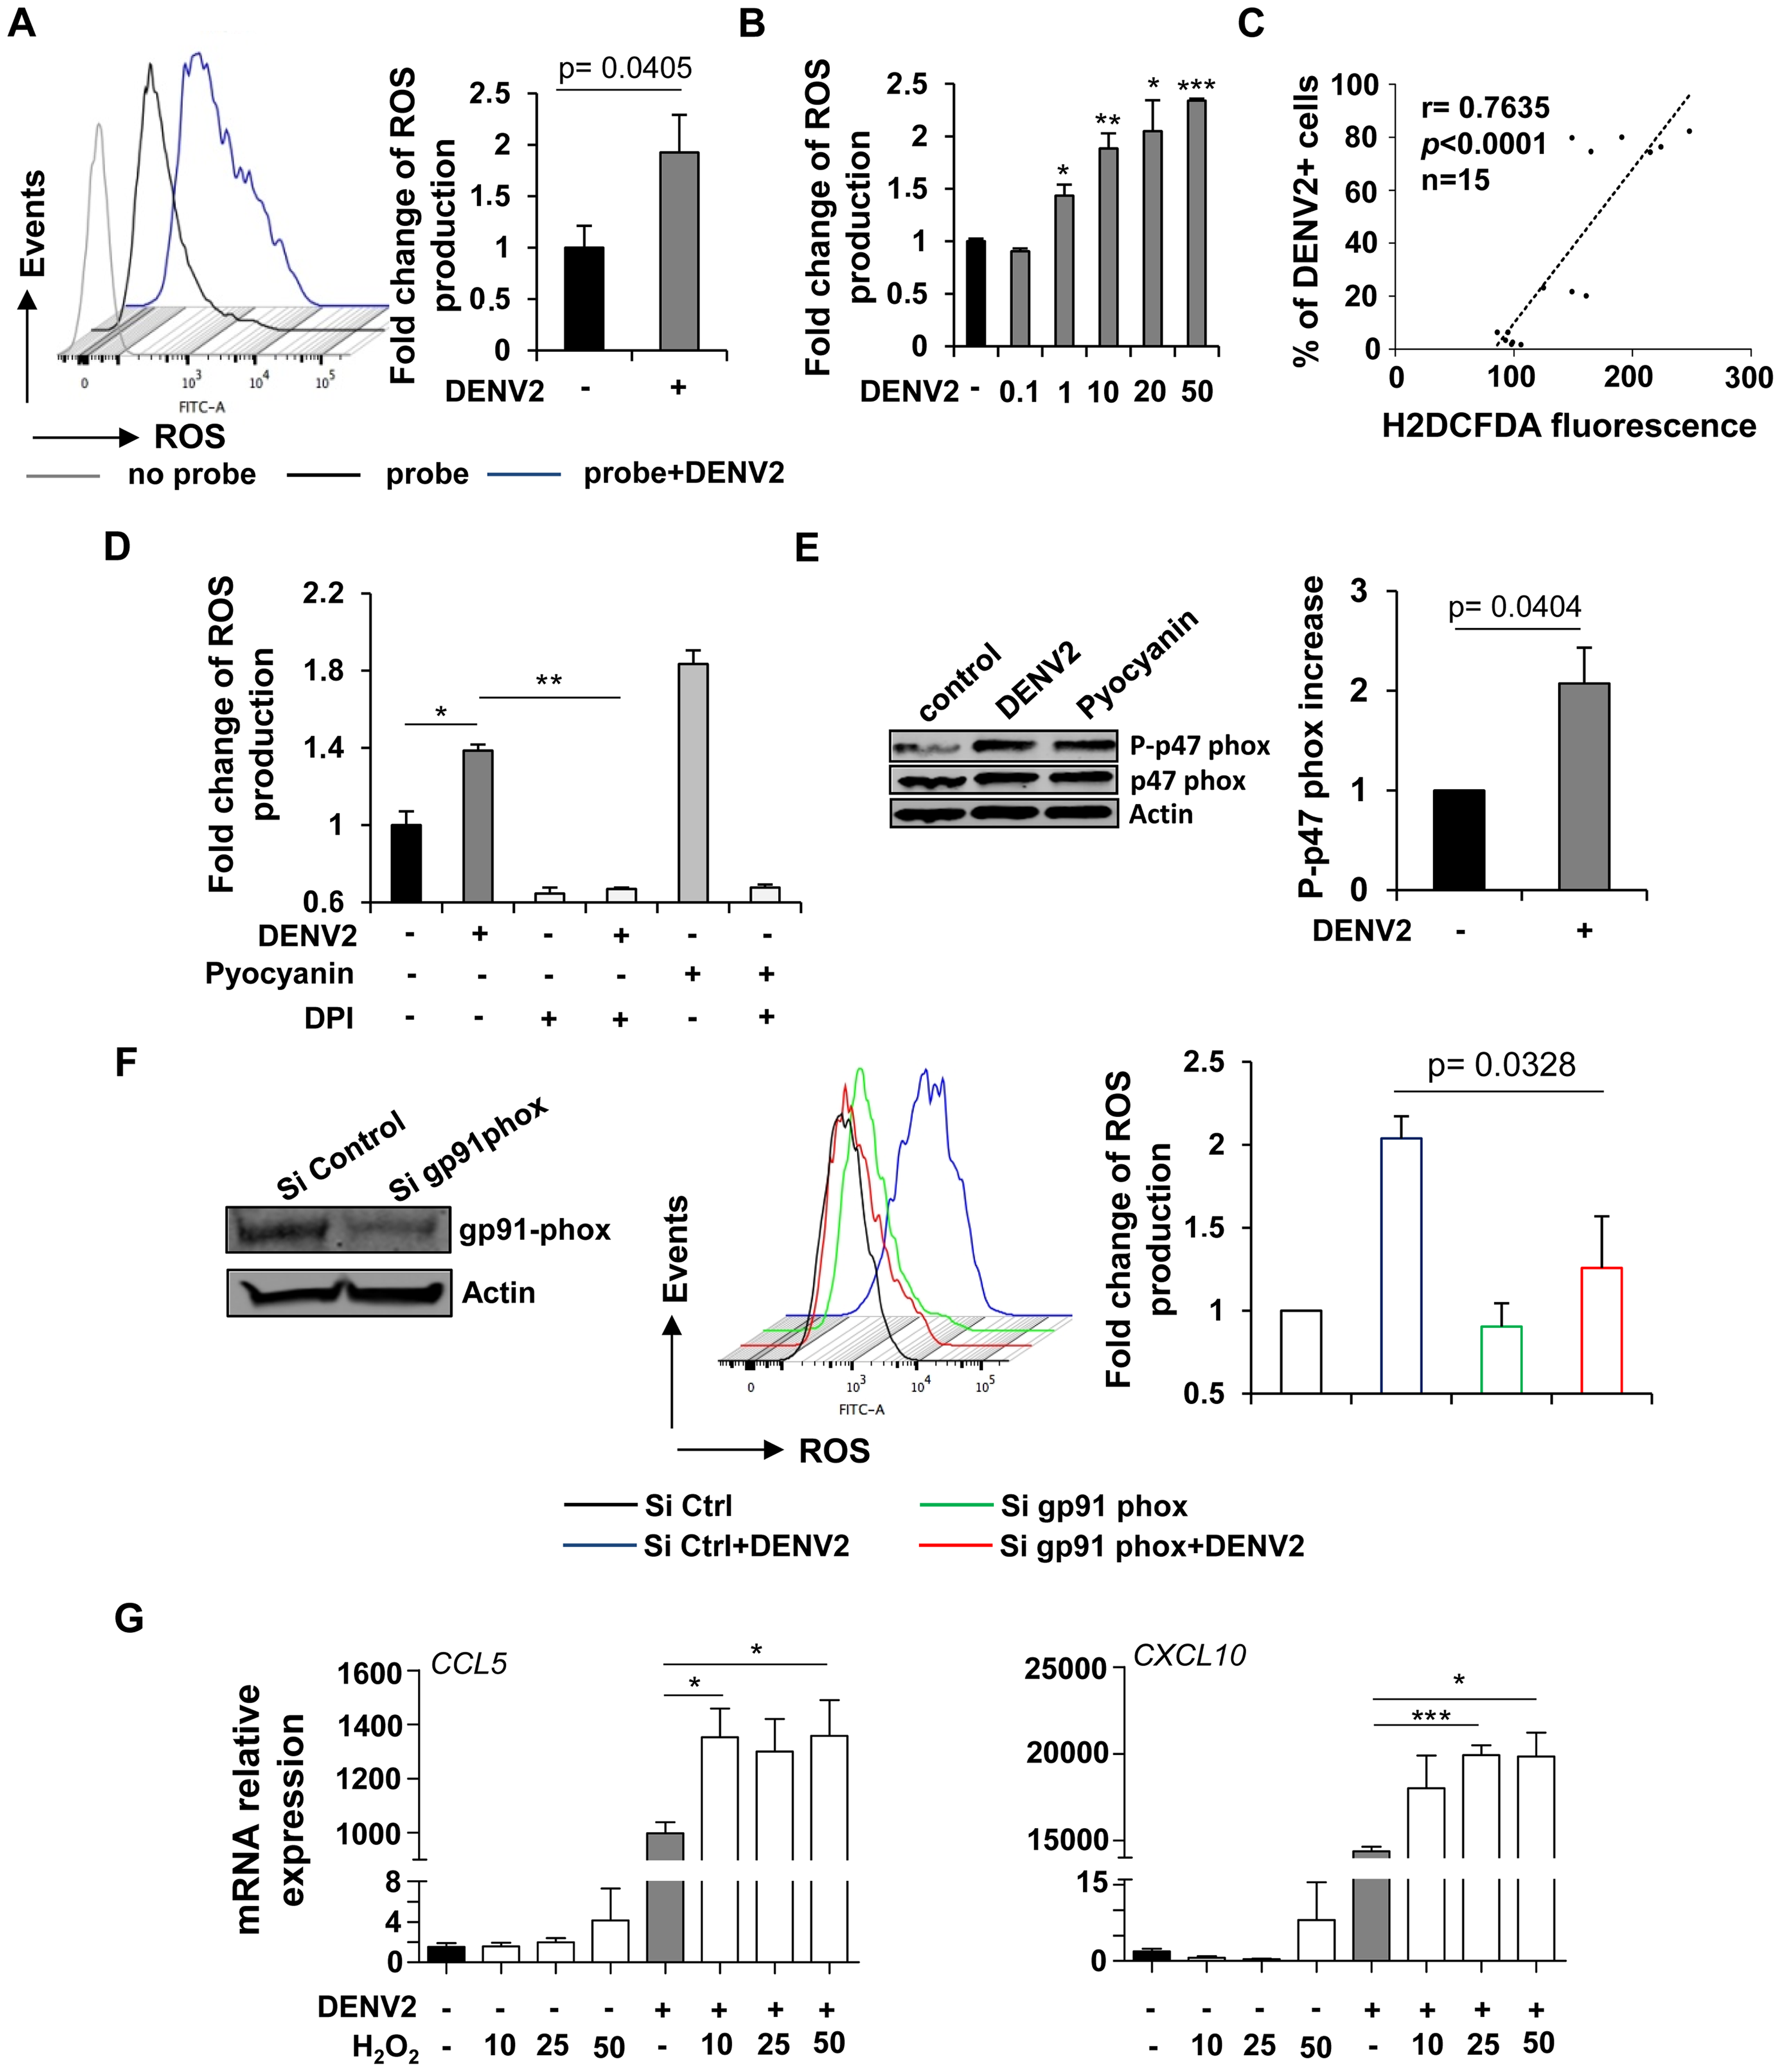 DENV-infected cells accumulate intracellular NOX-derived ROS which potentiate the immune response.